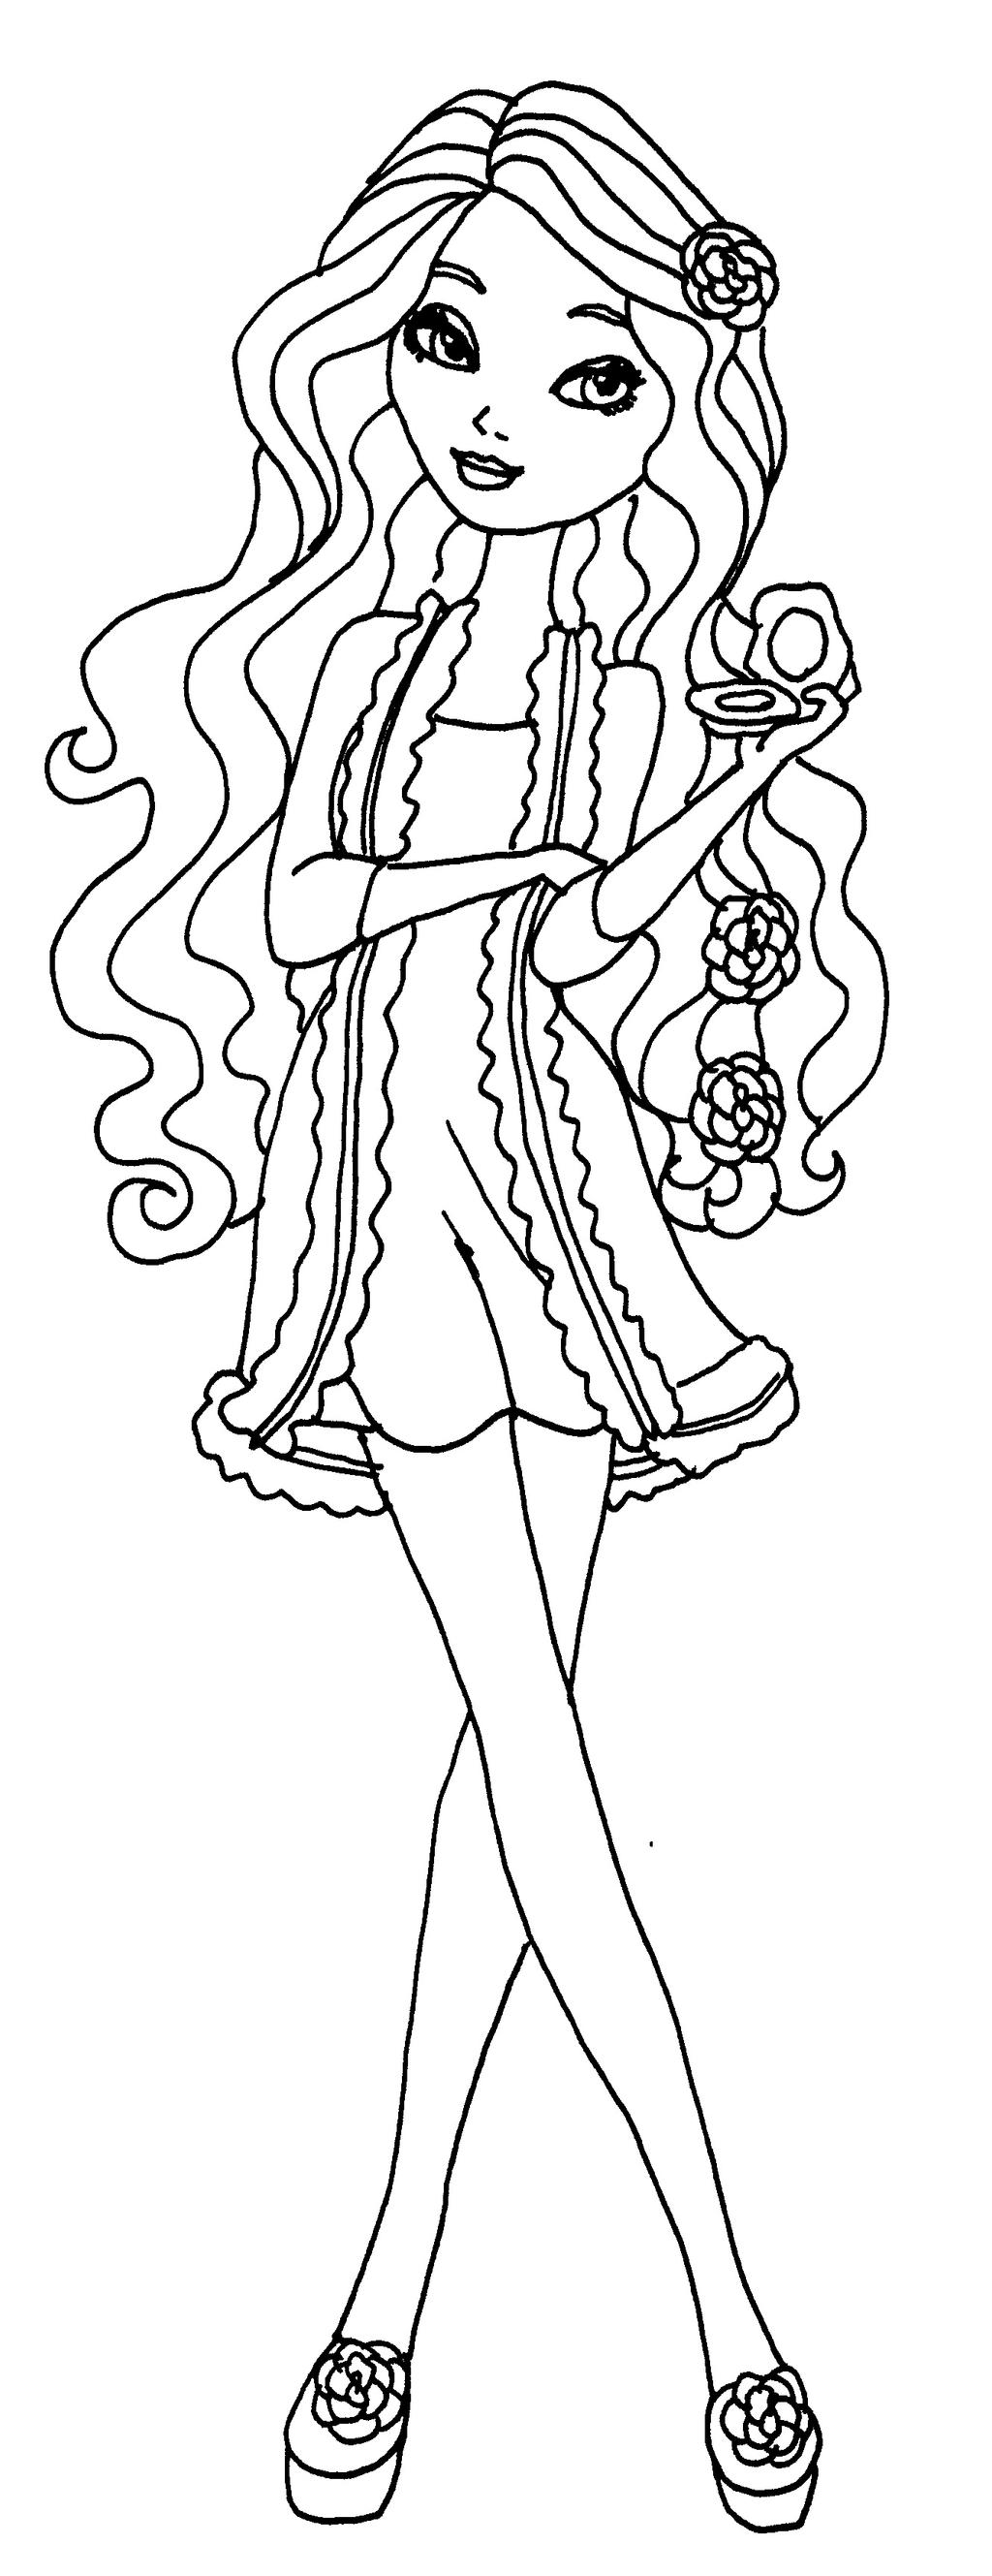 Colouring pages for ever after high - Elfkena 6 0 Getting Faires Briar By Elfkena